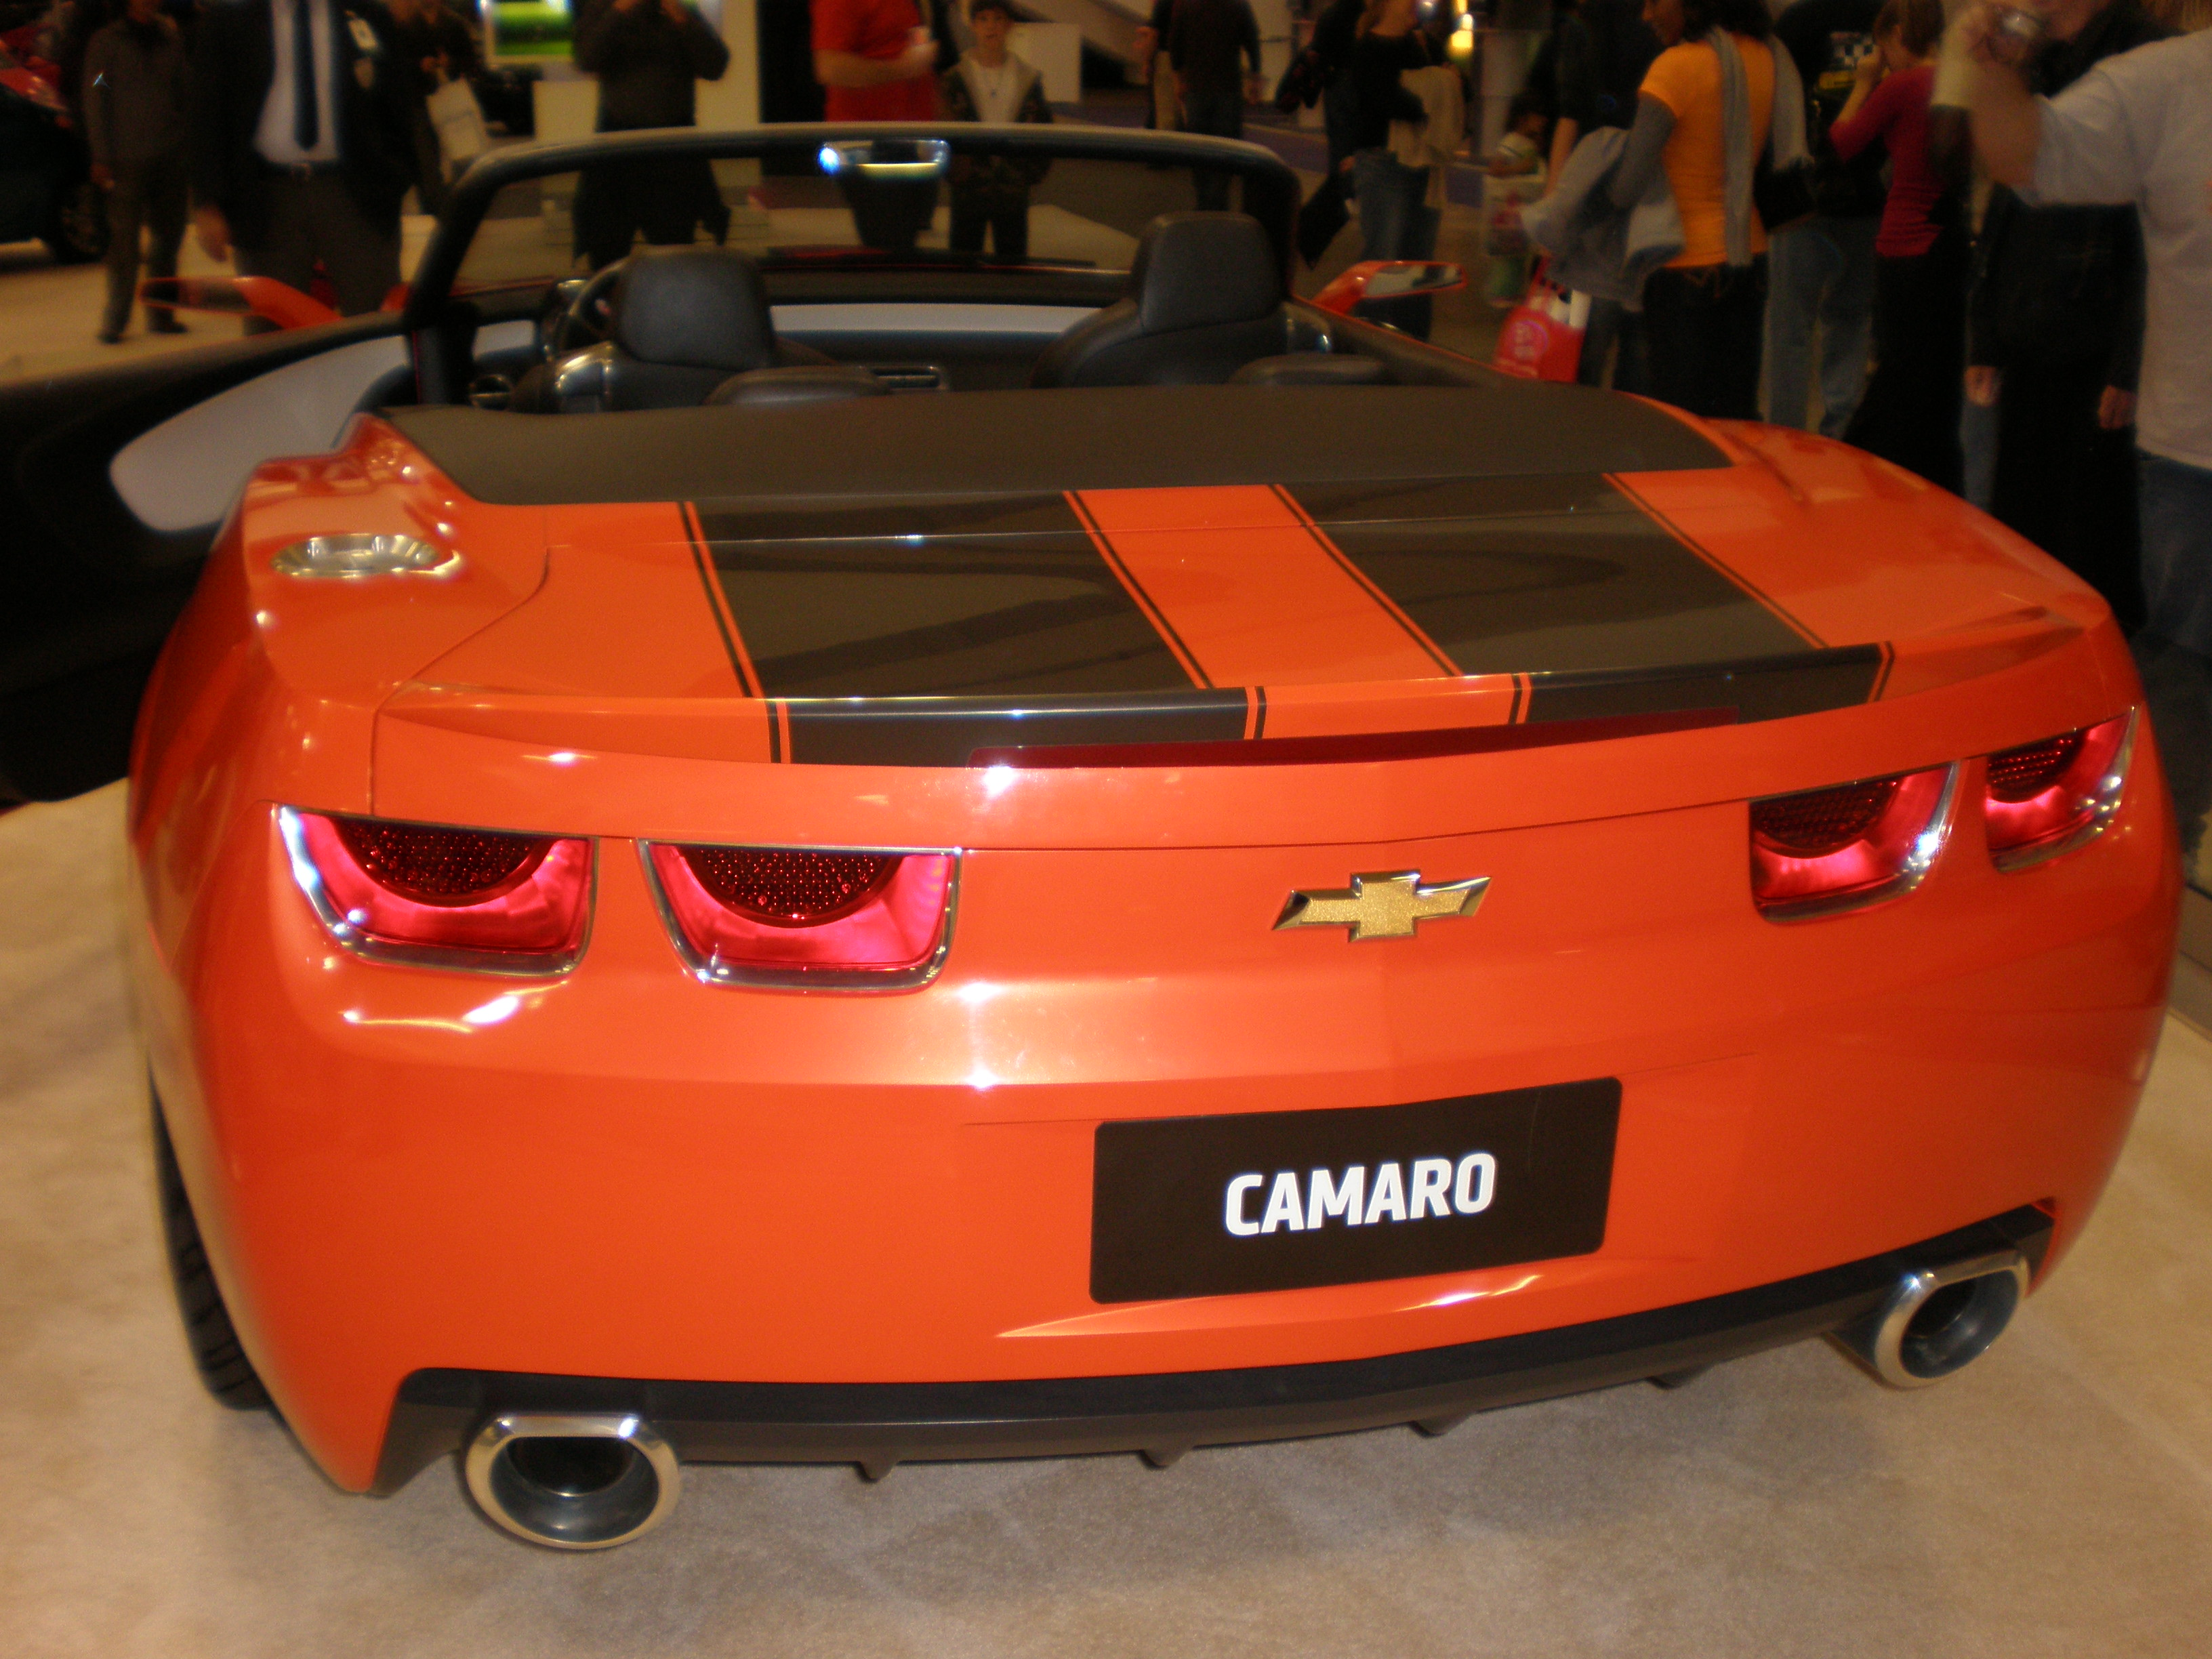 File:2007 Chevrolet Camaro Convertible Concept rear.JPG - Wikimedia Commons